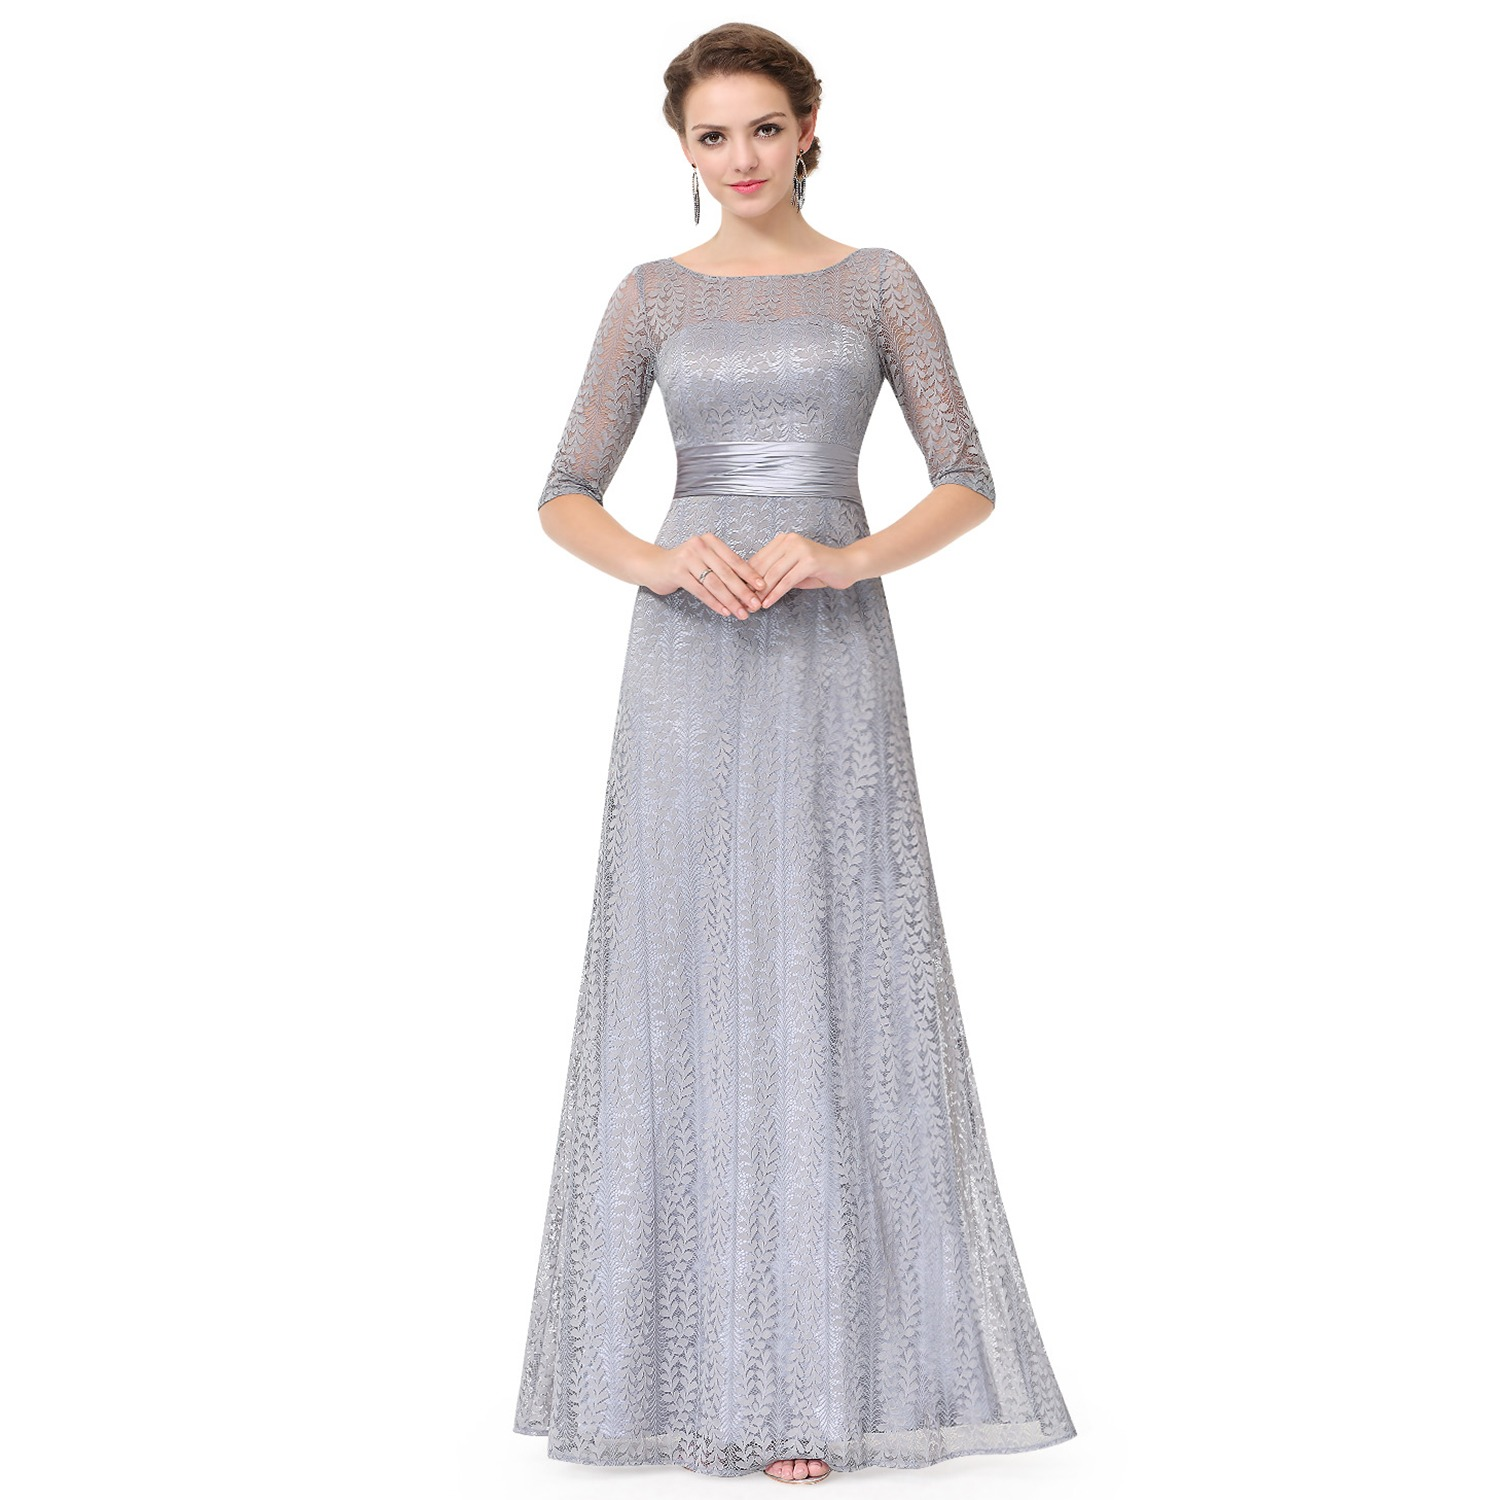 1e6dbf25887 Women s Elegant Long Mother of the Bride Dresses 2018 Ever Pretty EP08878  Cheap Grey Lace Floor